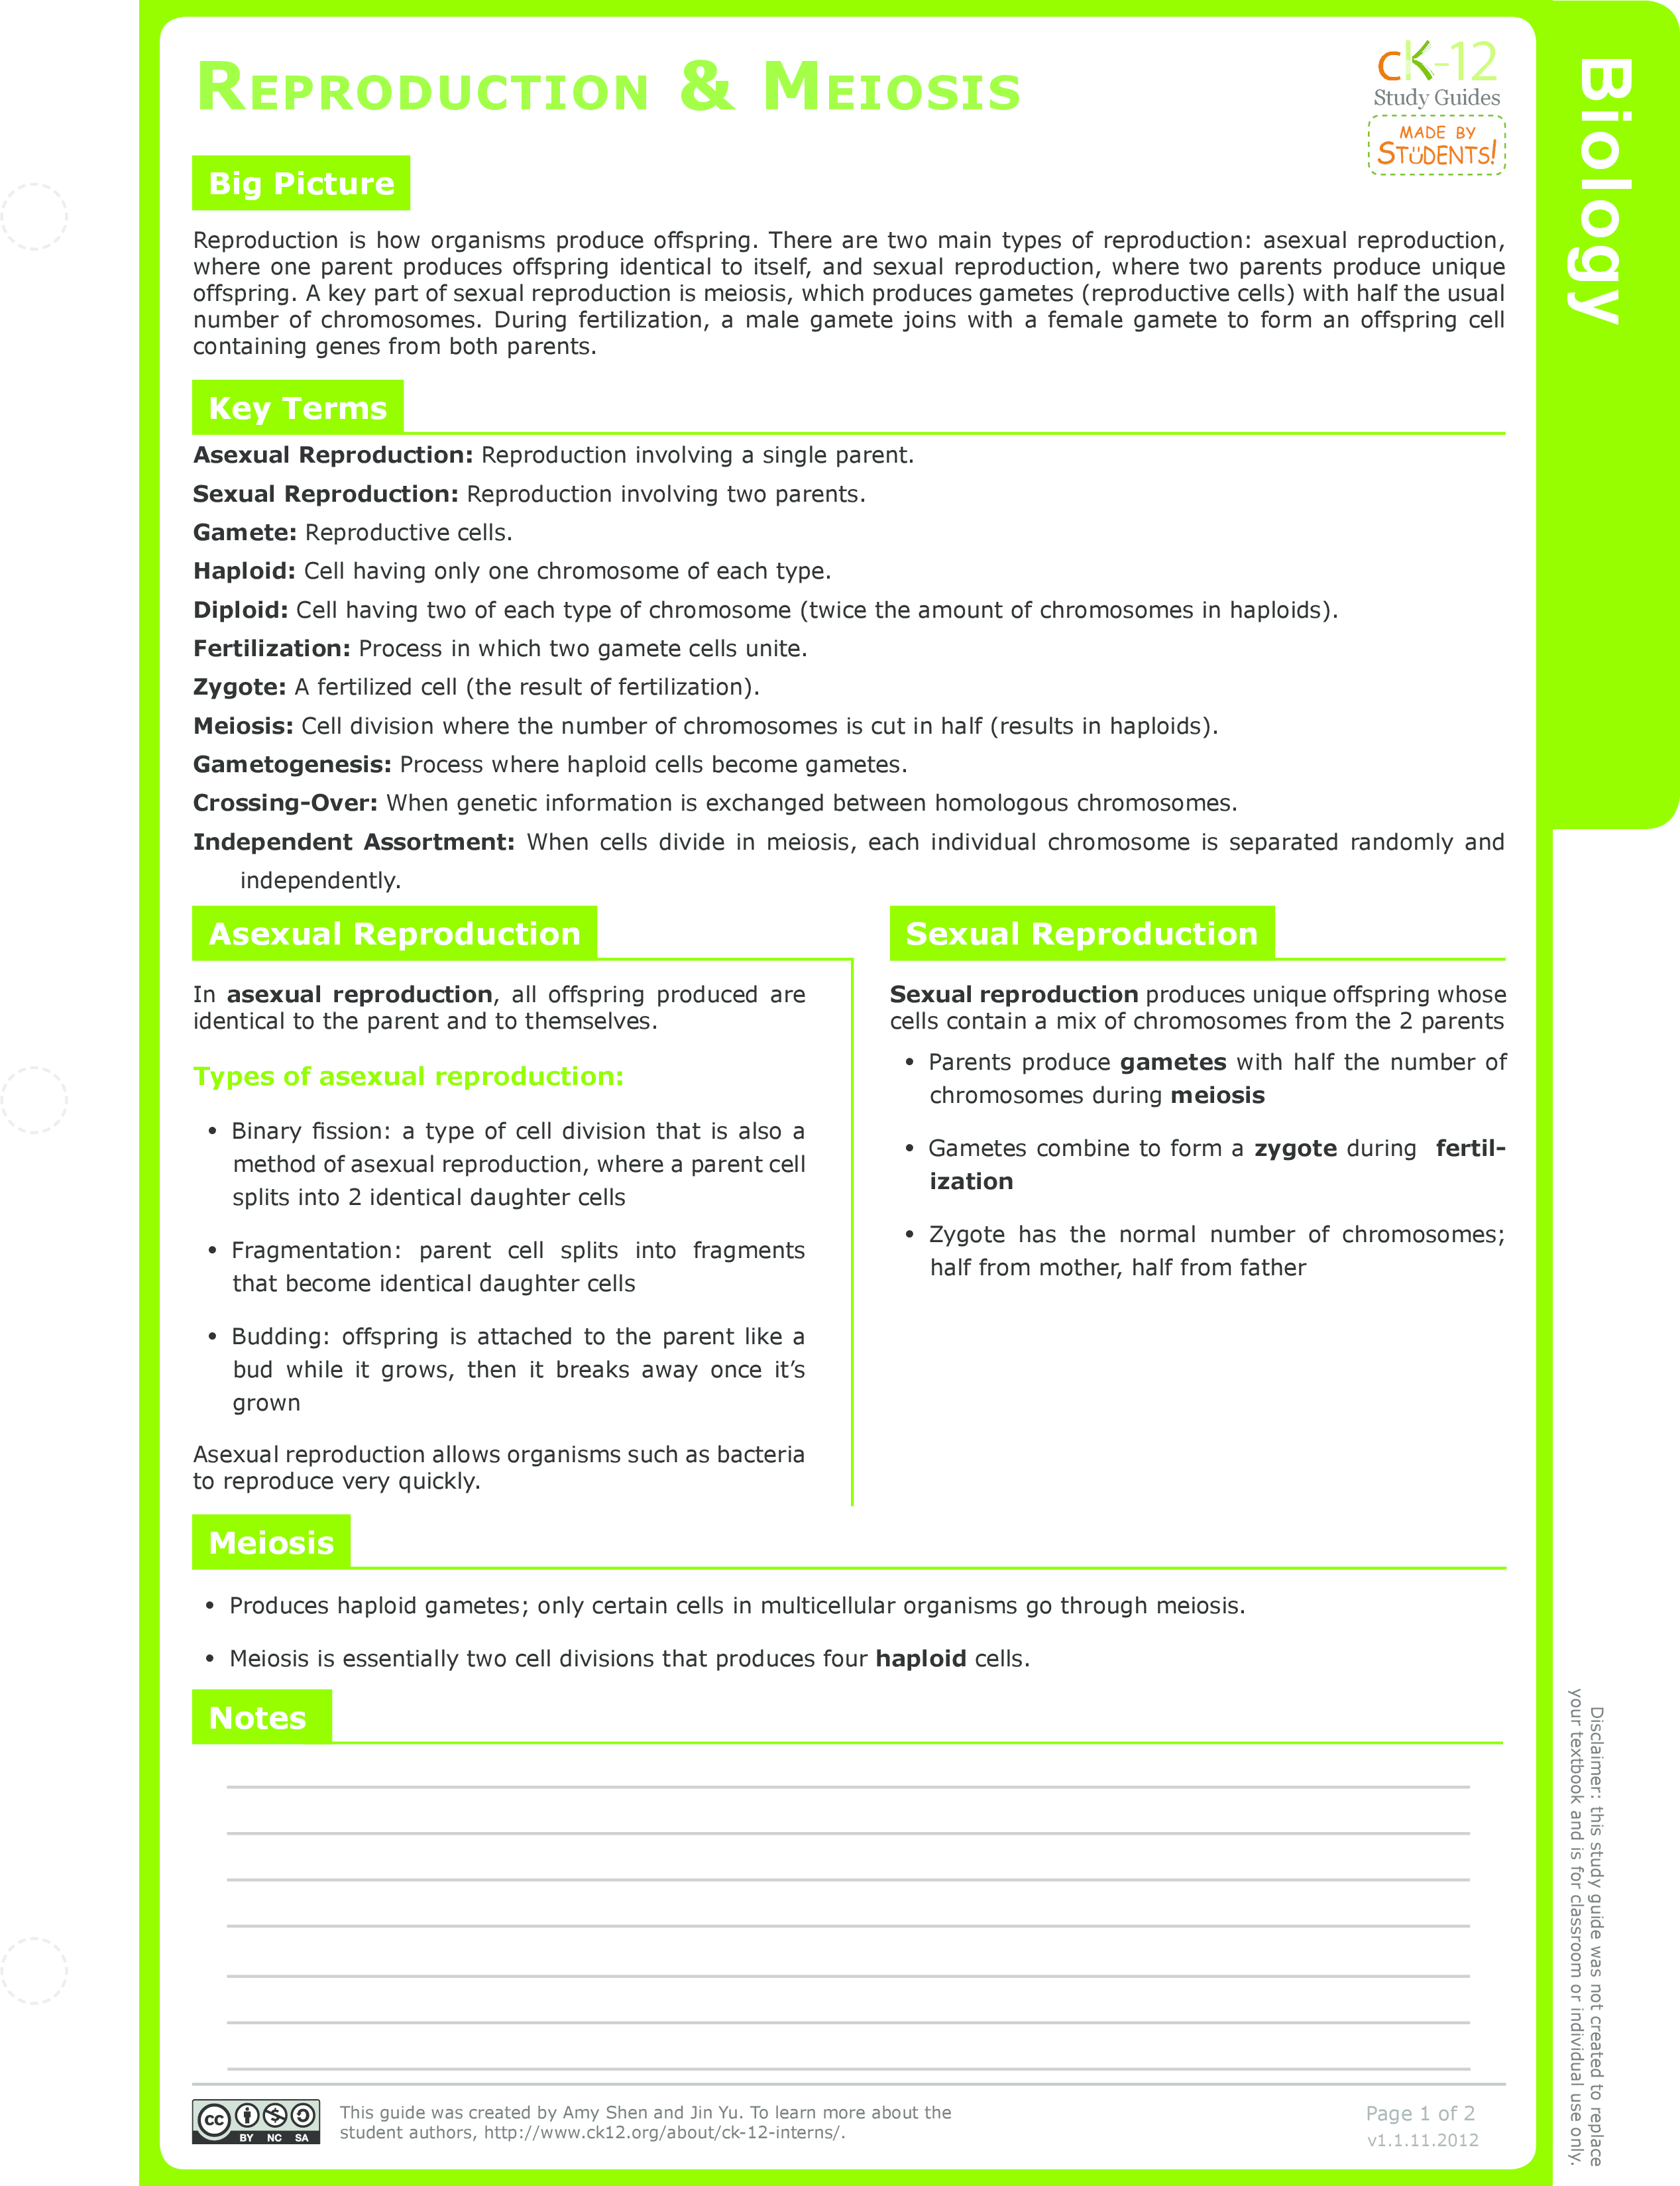 Asexual vs Sexual Reproduction Study Aids Biology – Asexual Vs Sexual Reproduction Worksheet